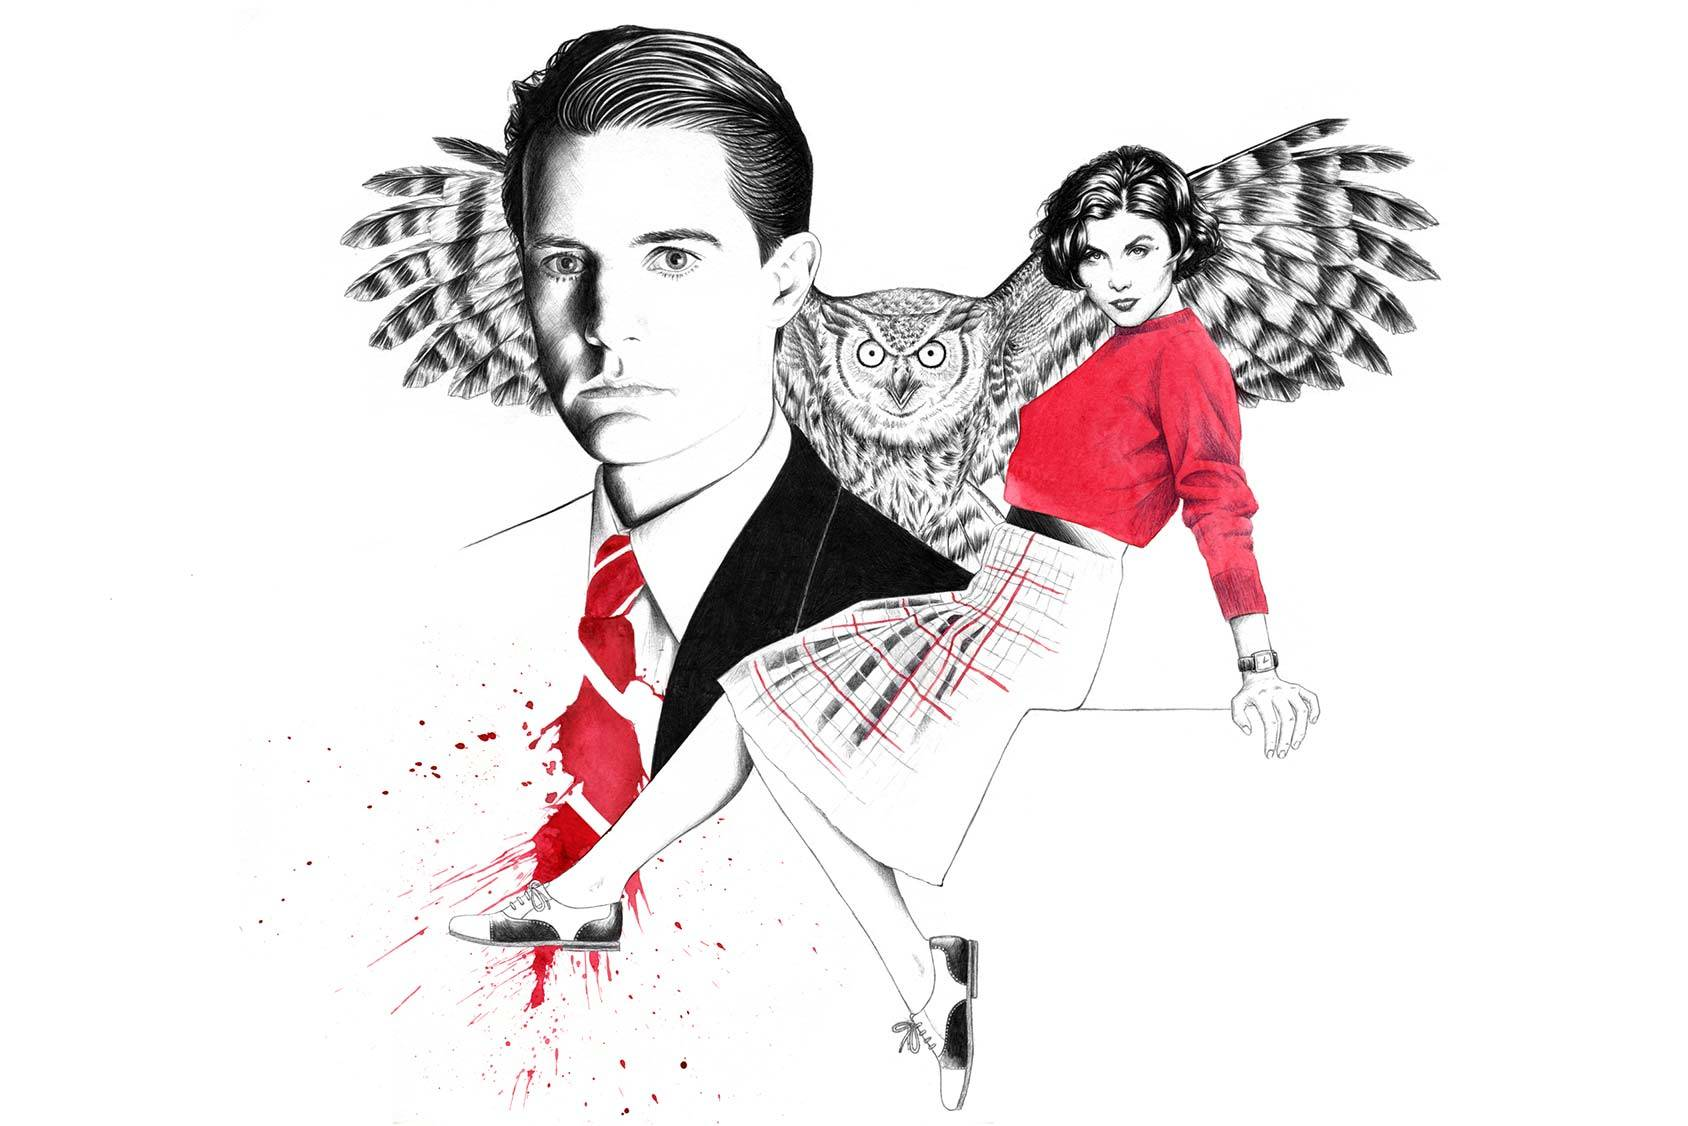 Special Agent Dale Cooper and Audrey Horne by Florian Meacci.